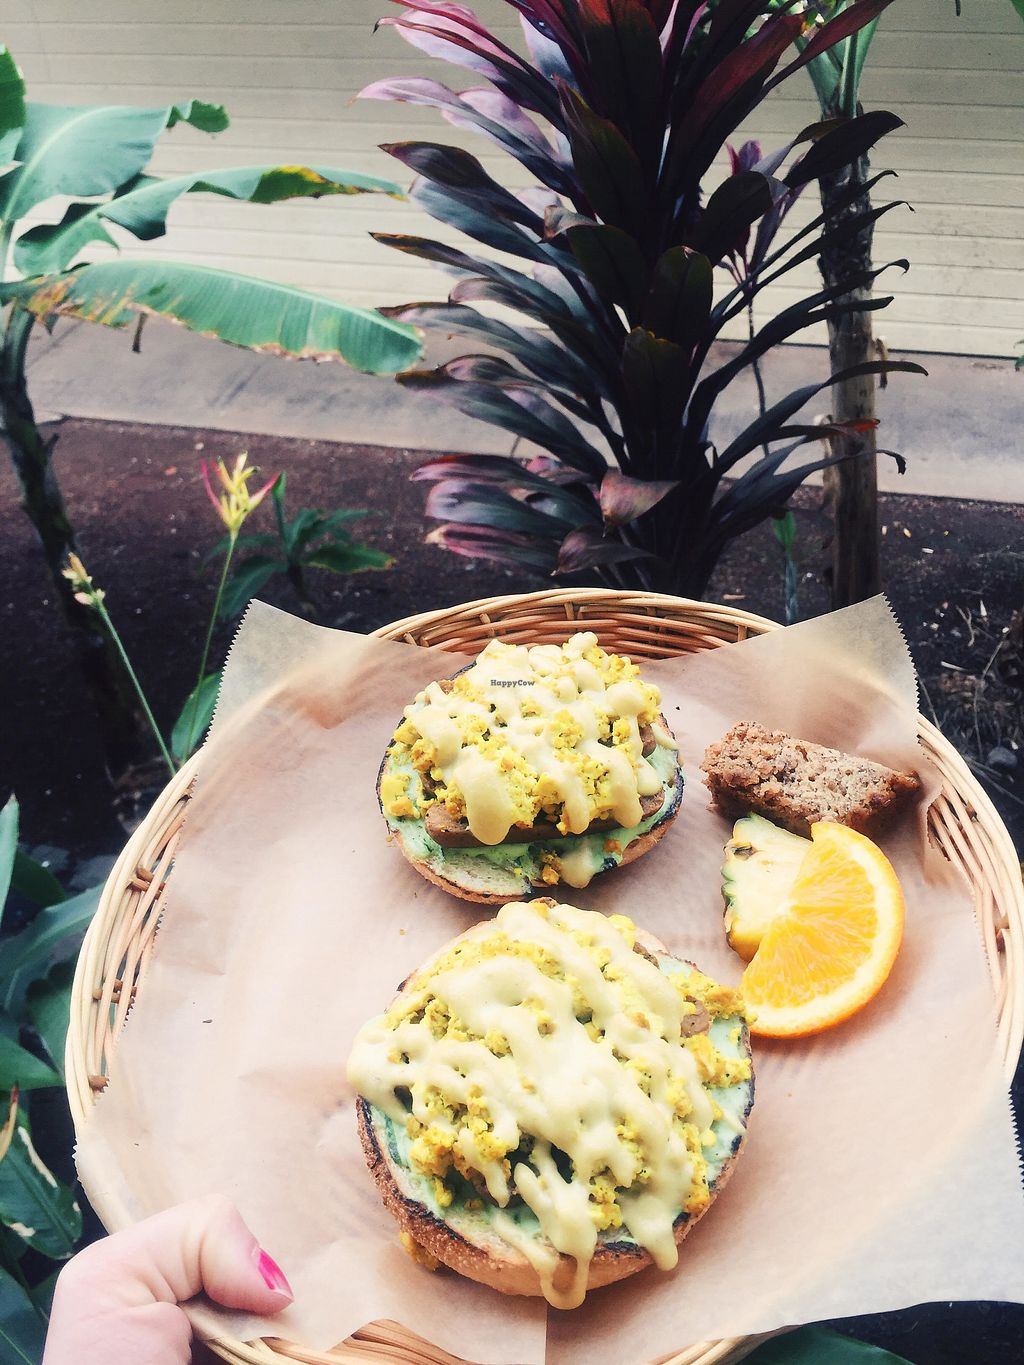 """Photo of Evolution Bakery and Cafe  by <a href=""""/members/profile/Stephaneen"""">Stephaneen</a> <br/>Buddha on a herb bagel <br/> March 21, 2018  - <a href='/contact/abuse/image/43352/373528'>Report</a>"""